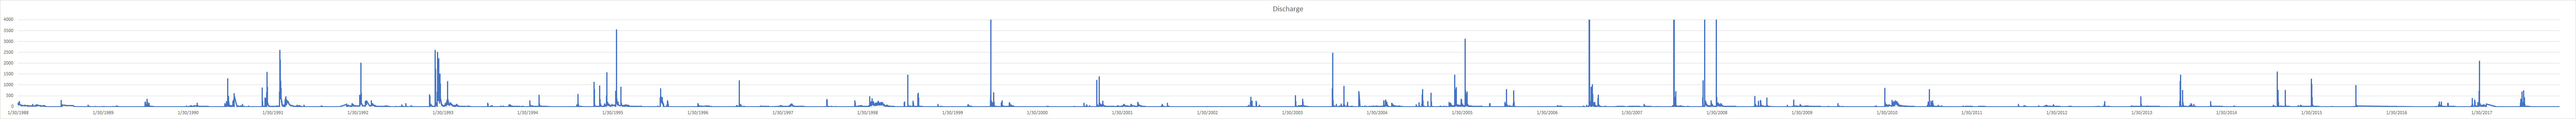 Sabino Creek Discharge 1988 to 2017 - the data contains . January 2018.